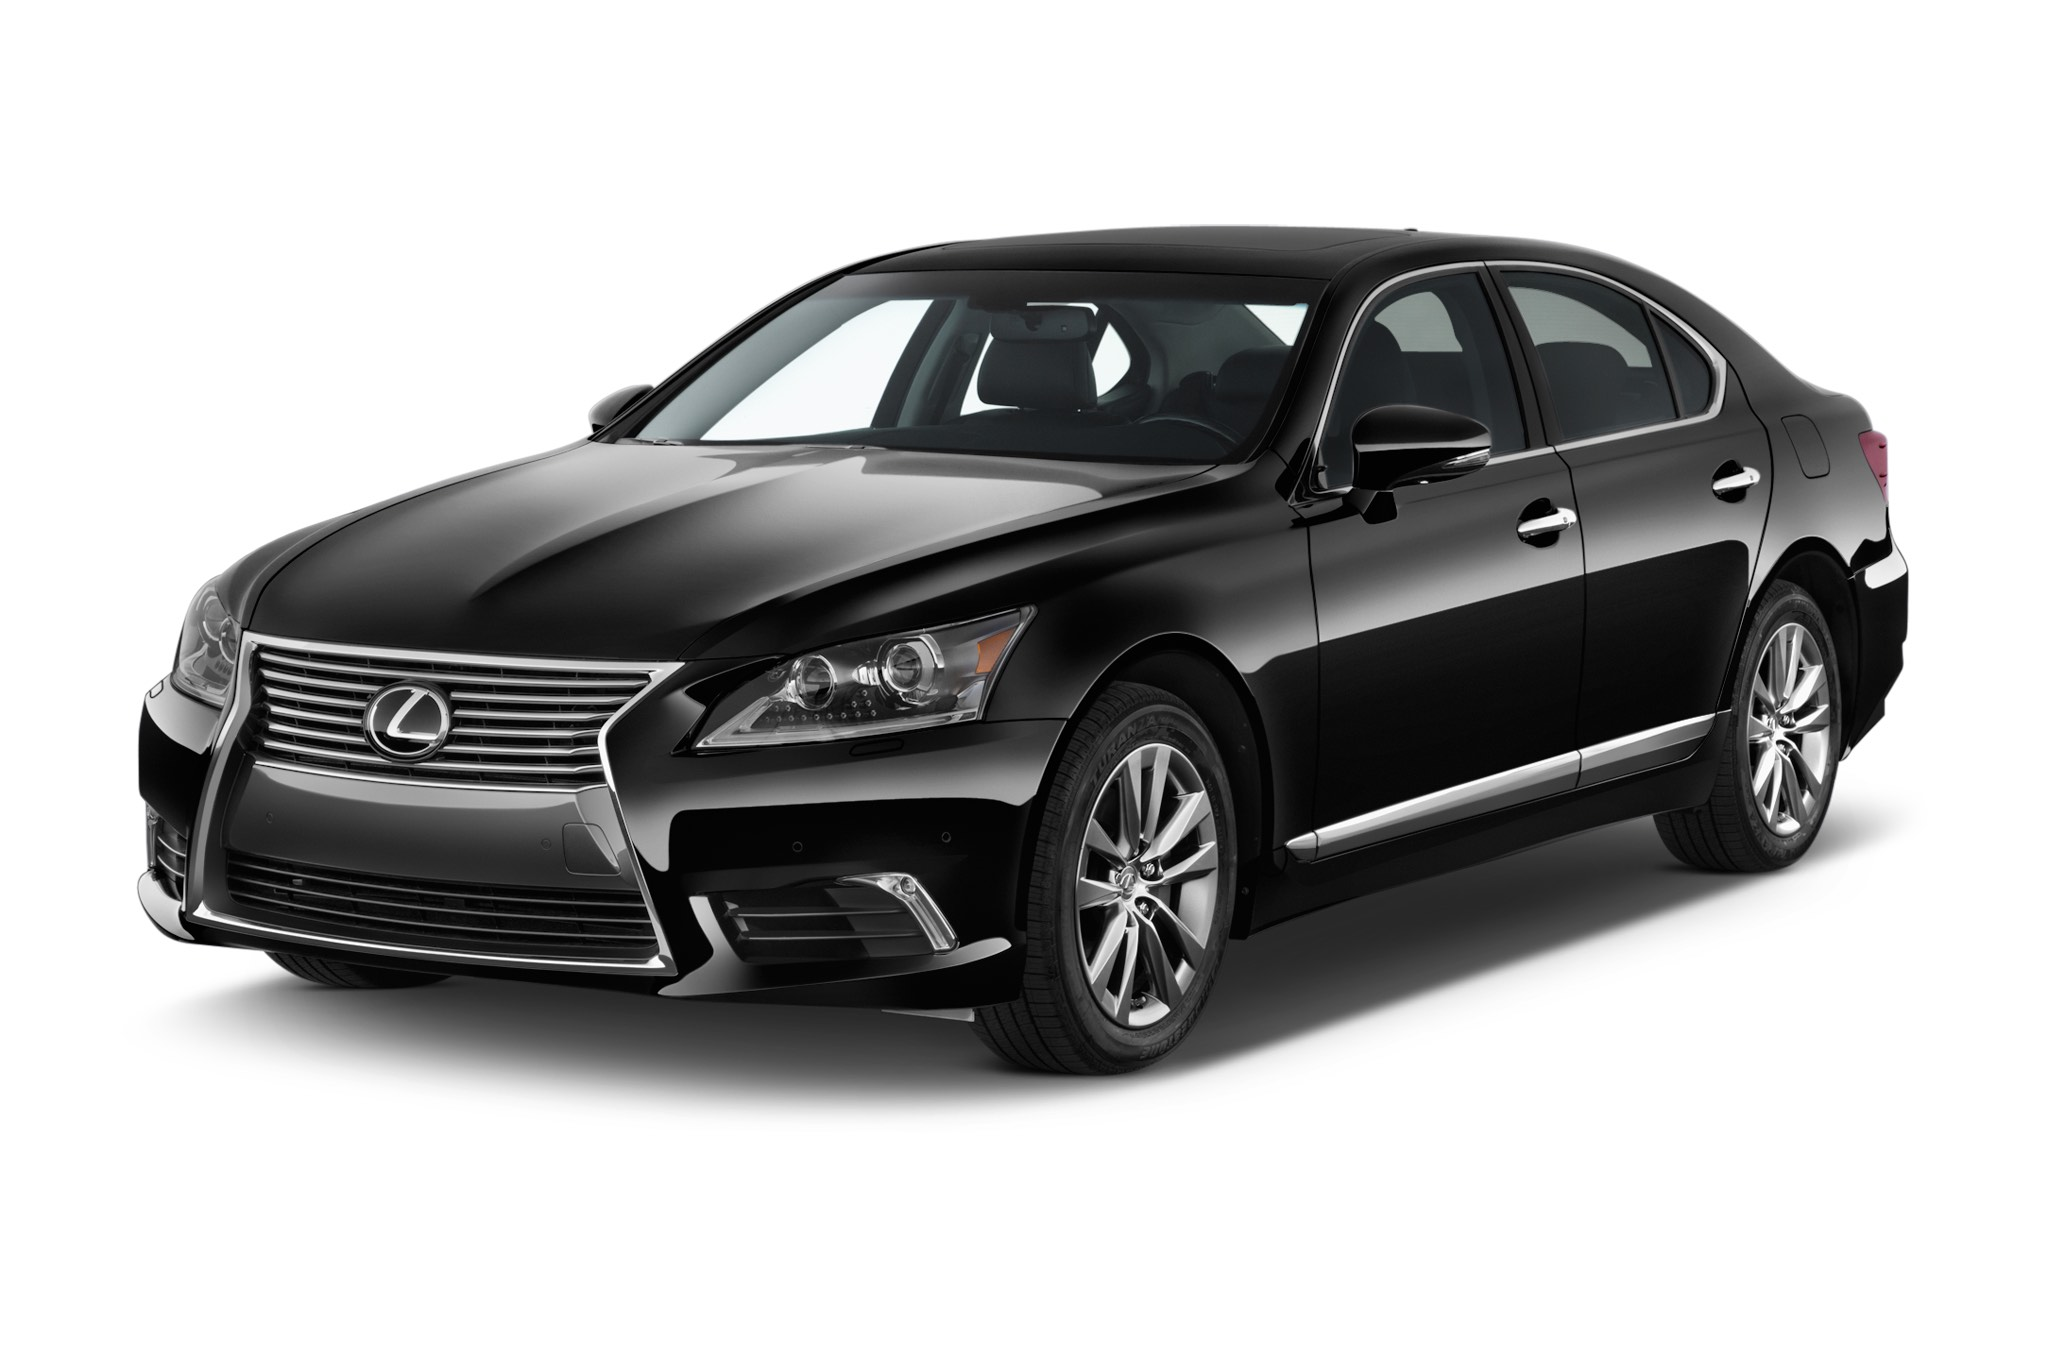 Lexus LS400, LS430, LS460, LS600 1990-2016 Workshop Repair & Service Manual